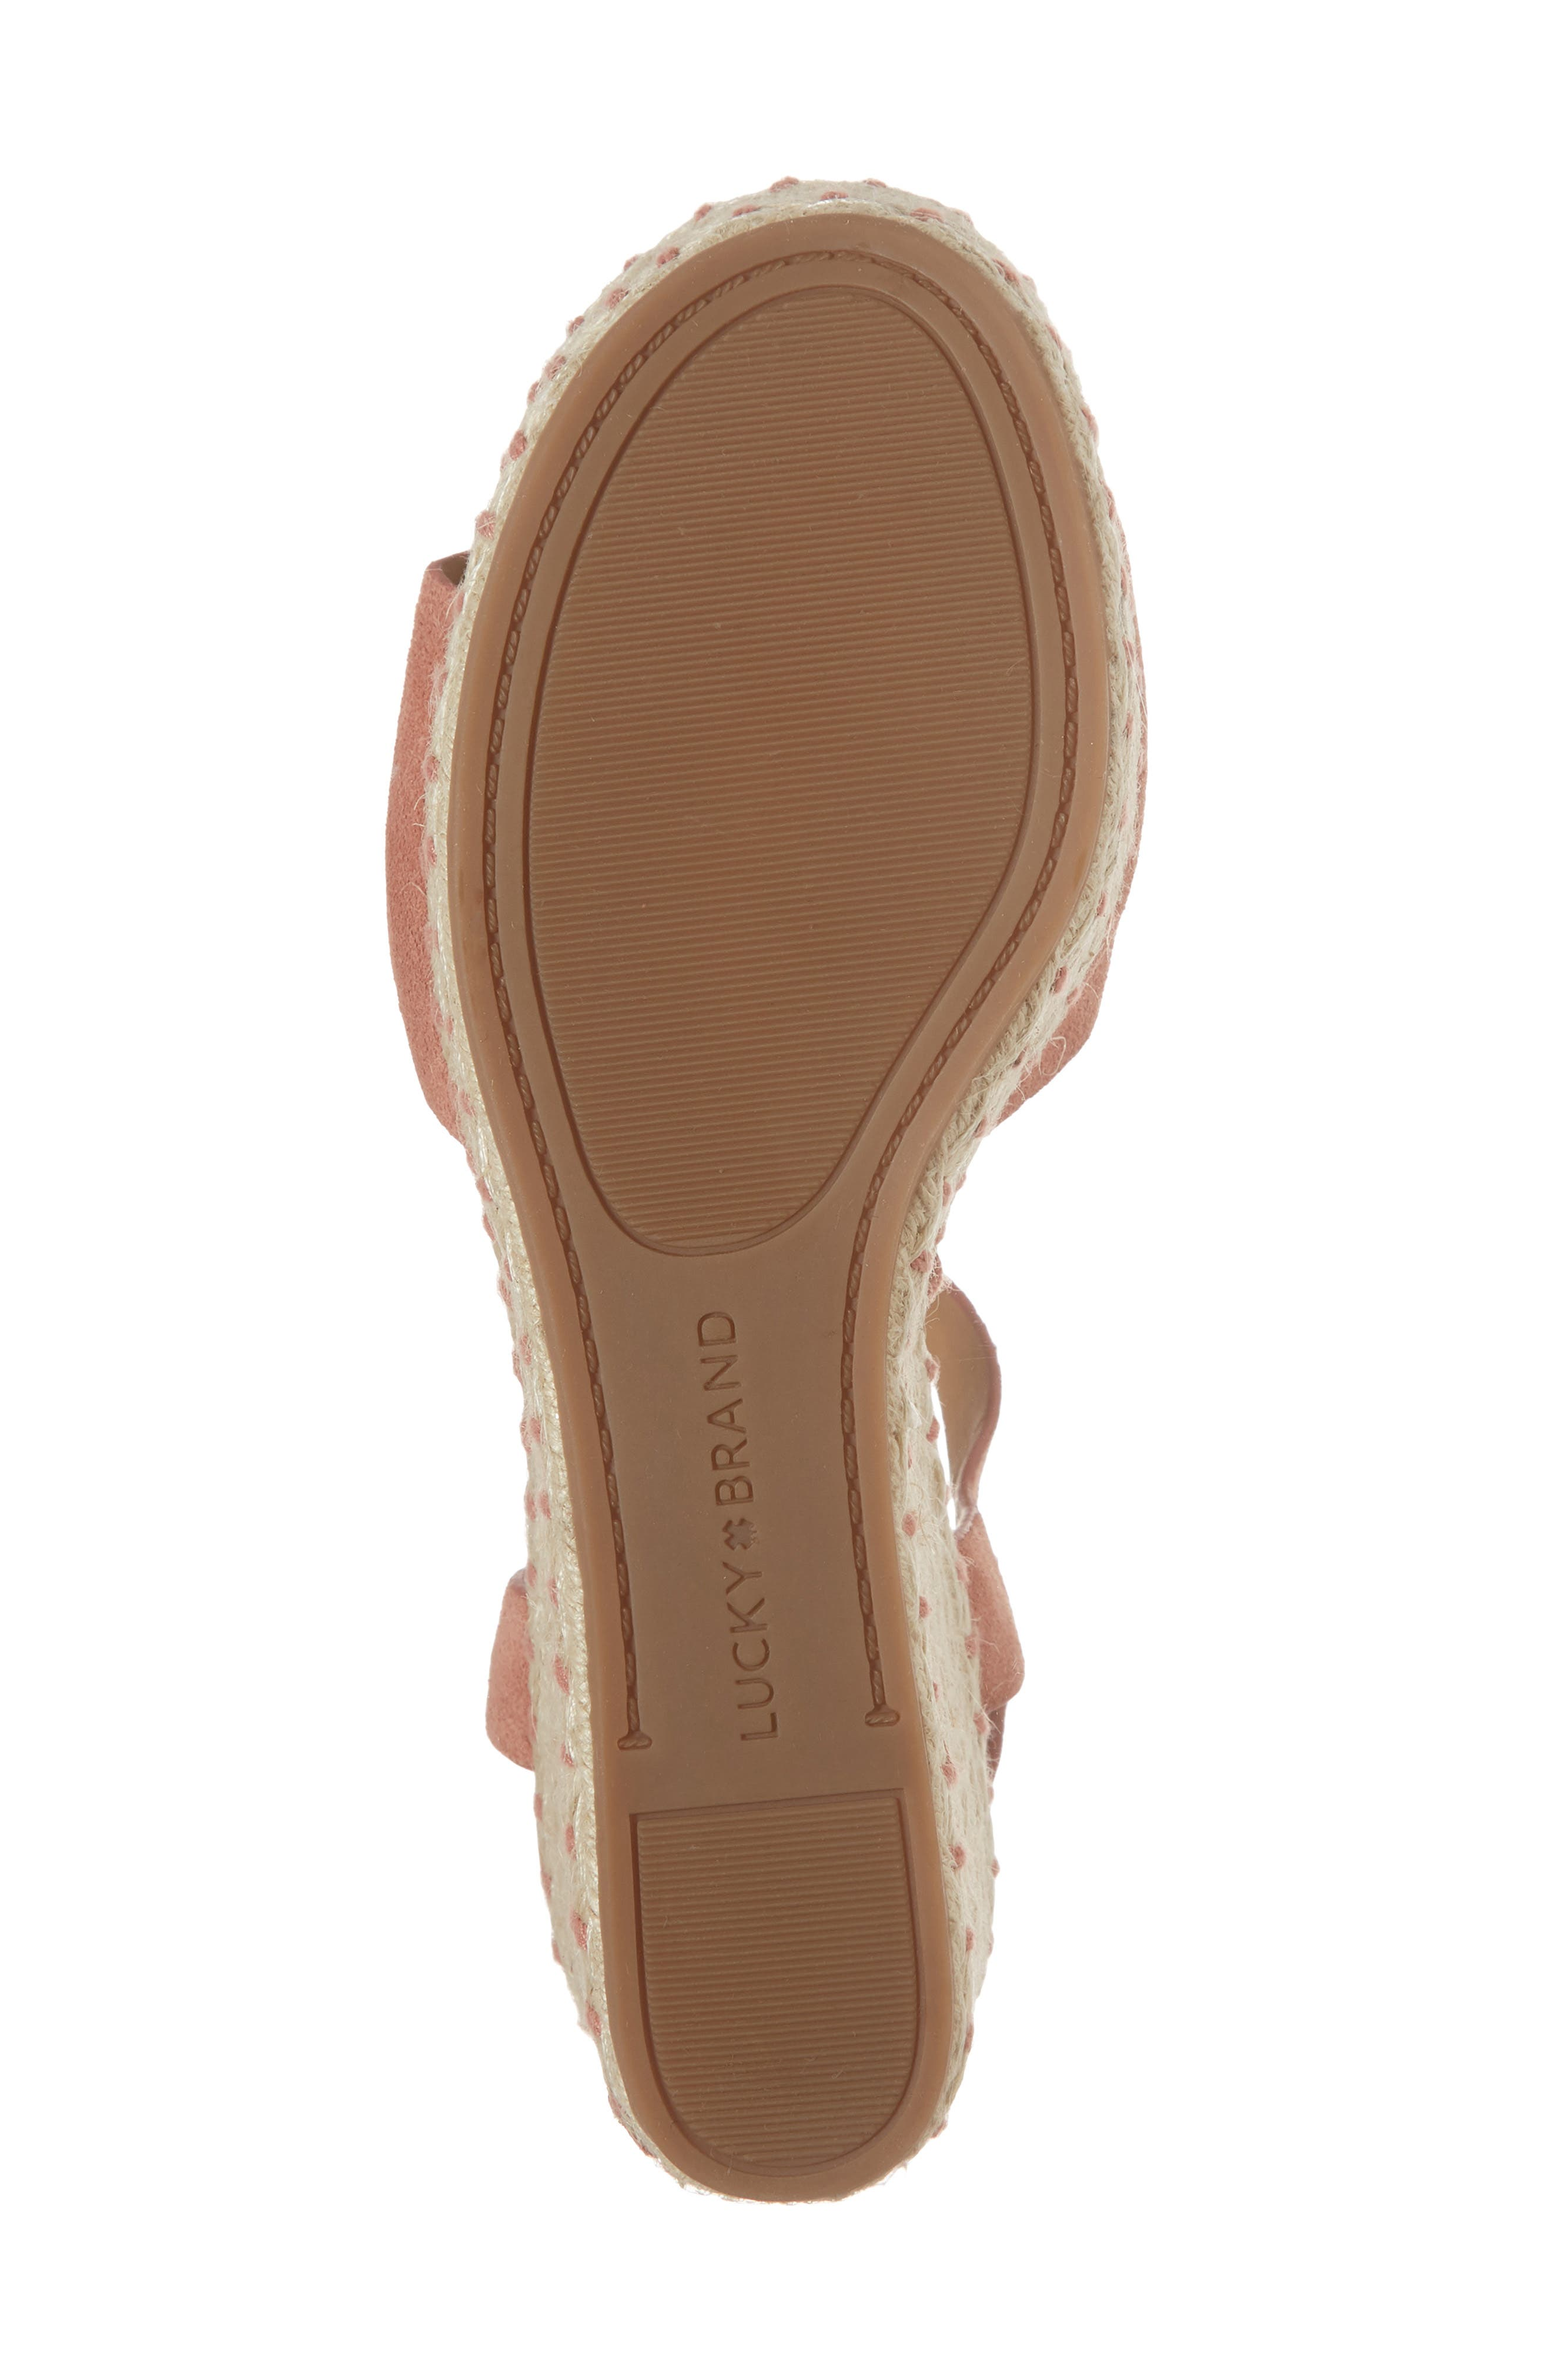 Naveah III Espadrille Wedge Sandal,                             Alternate thumbnail 6, color,                             Canyon Rose Suede